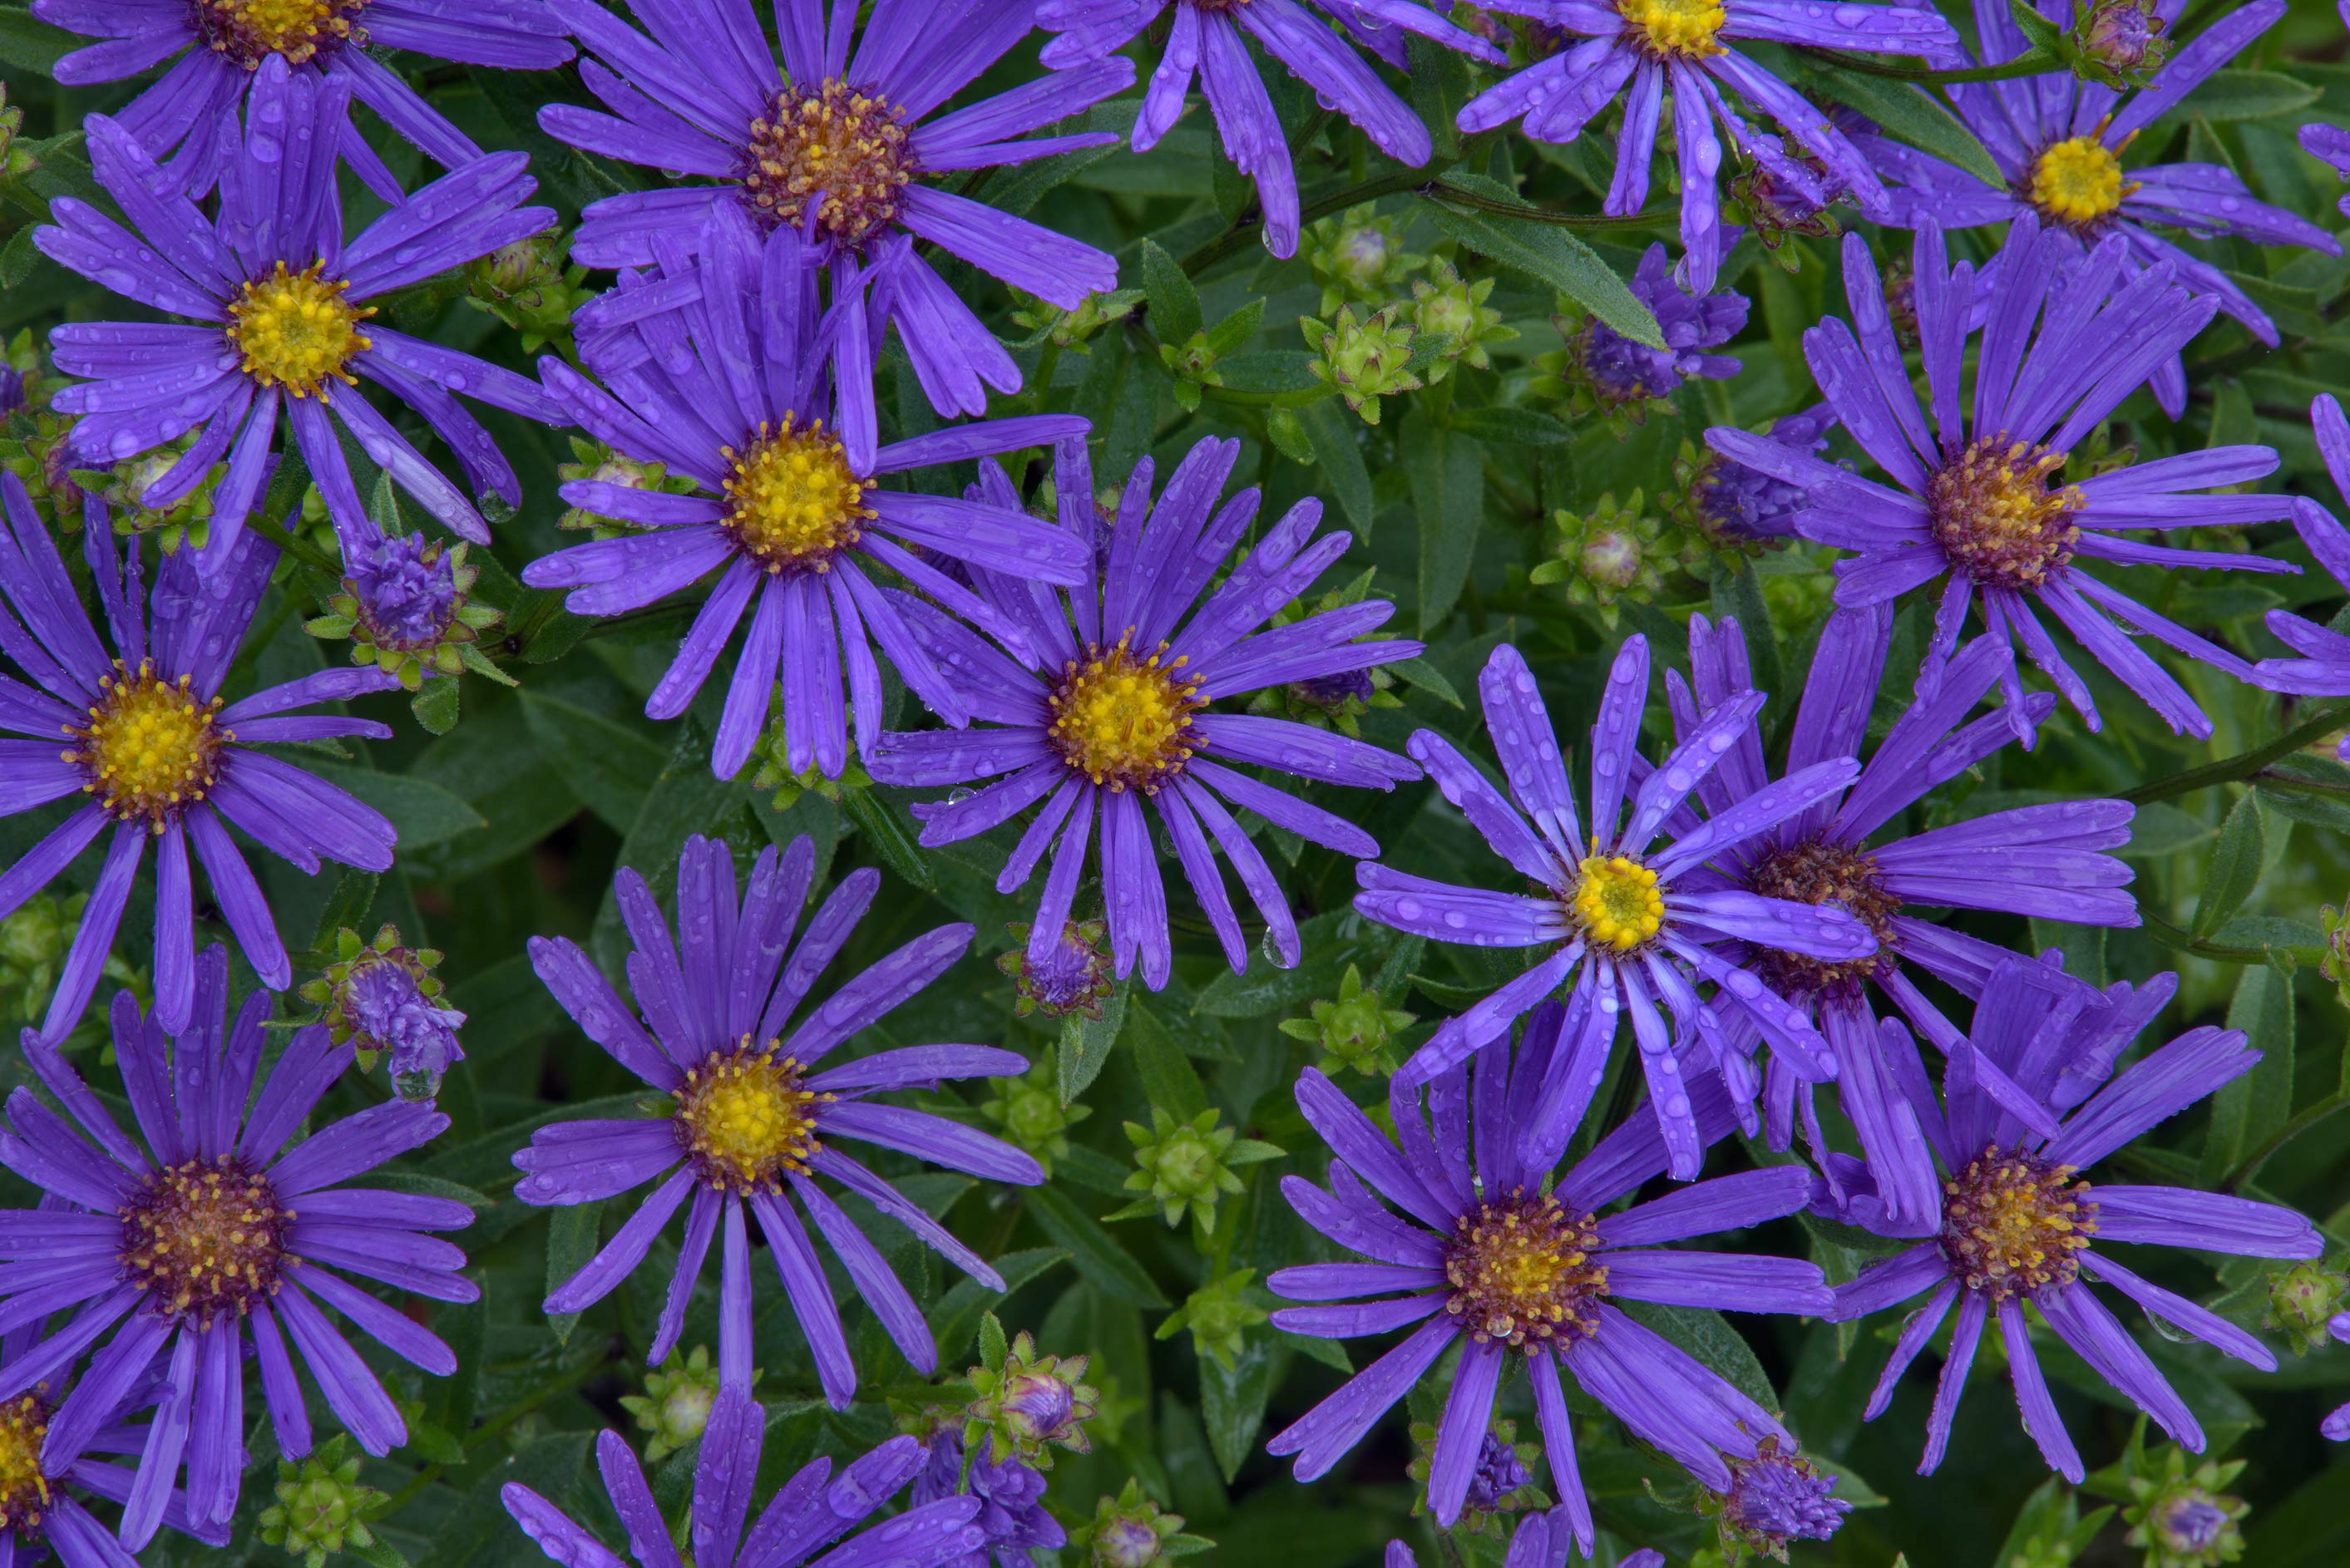 aster flower search in pictures